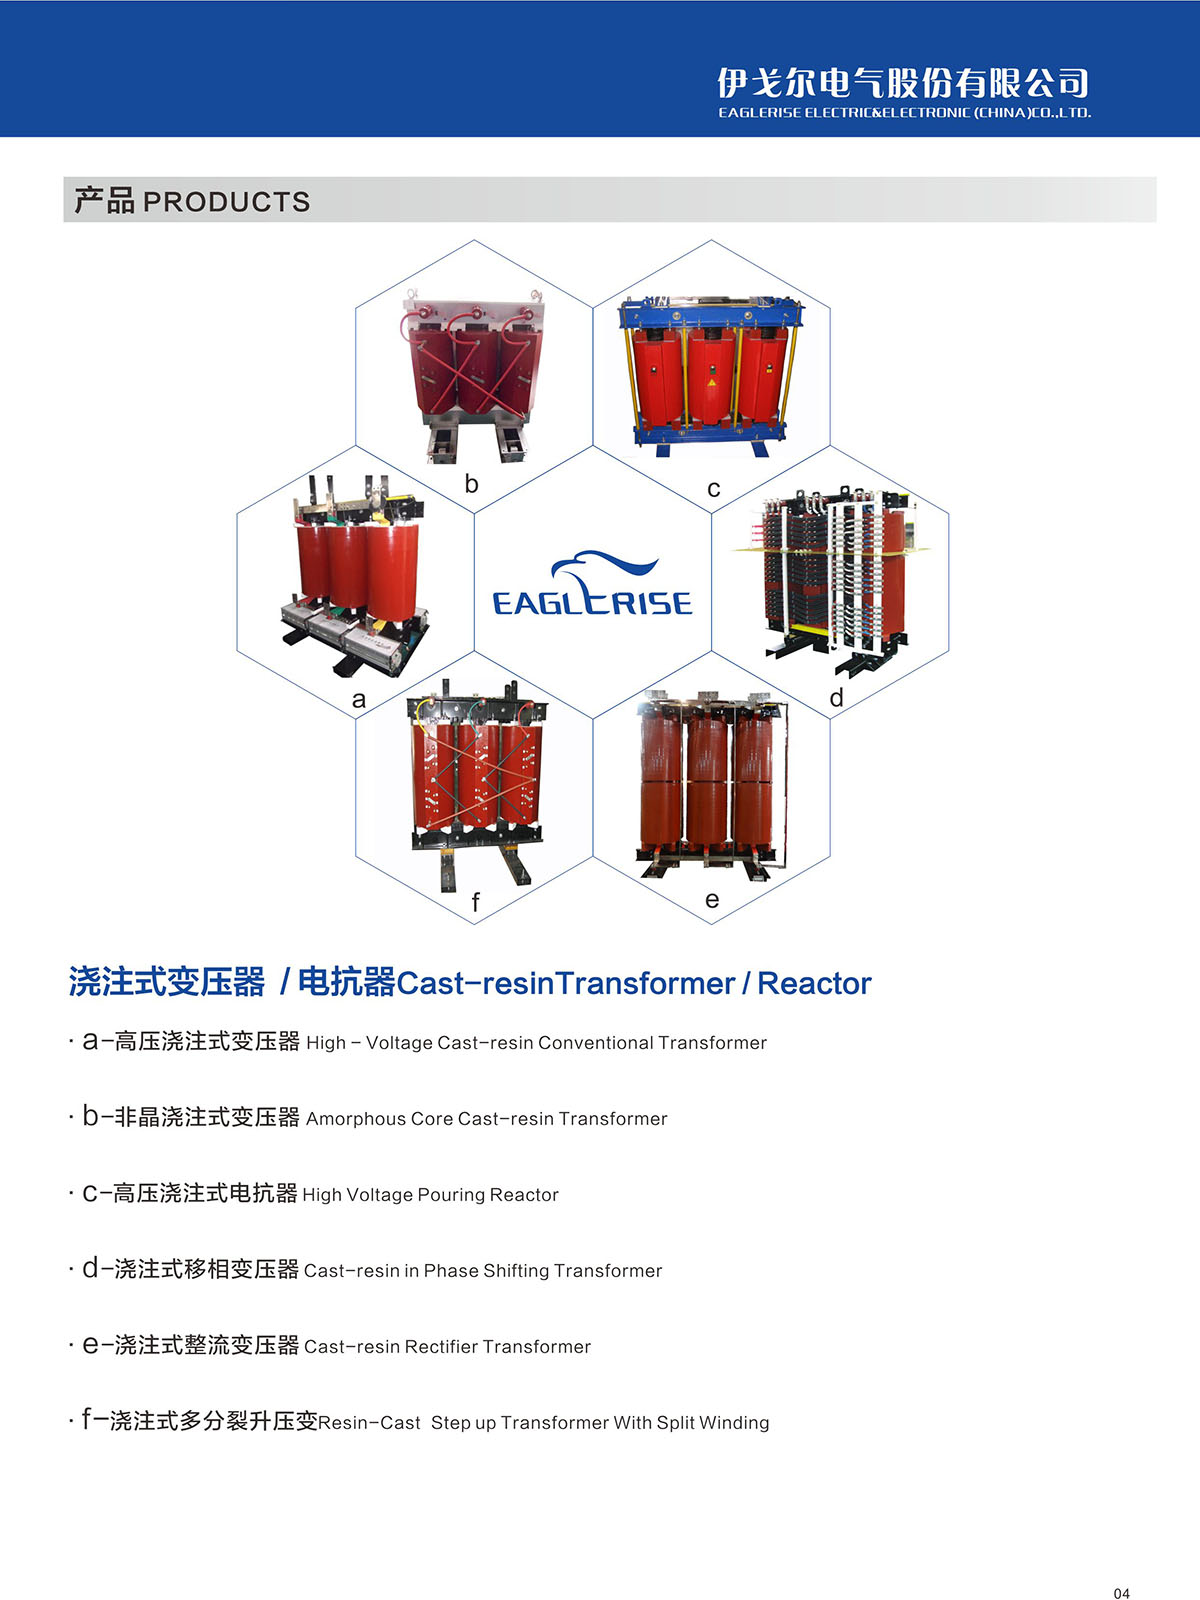 High - Voltage Cast-resin Conventional Transformer